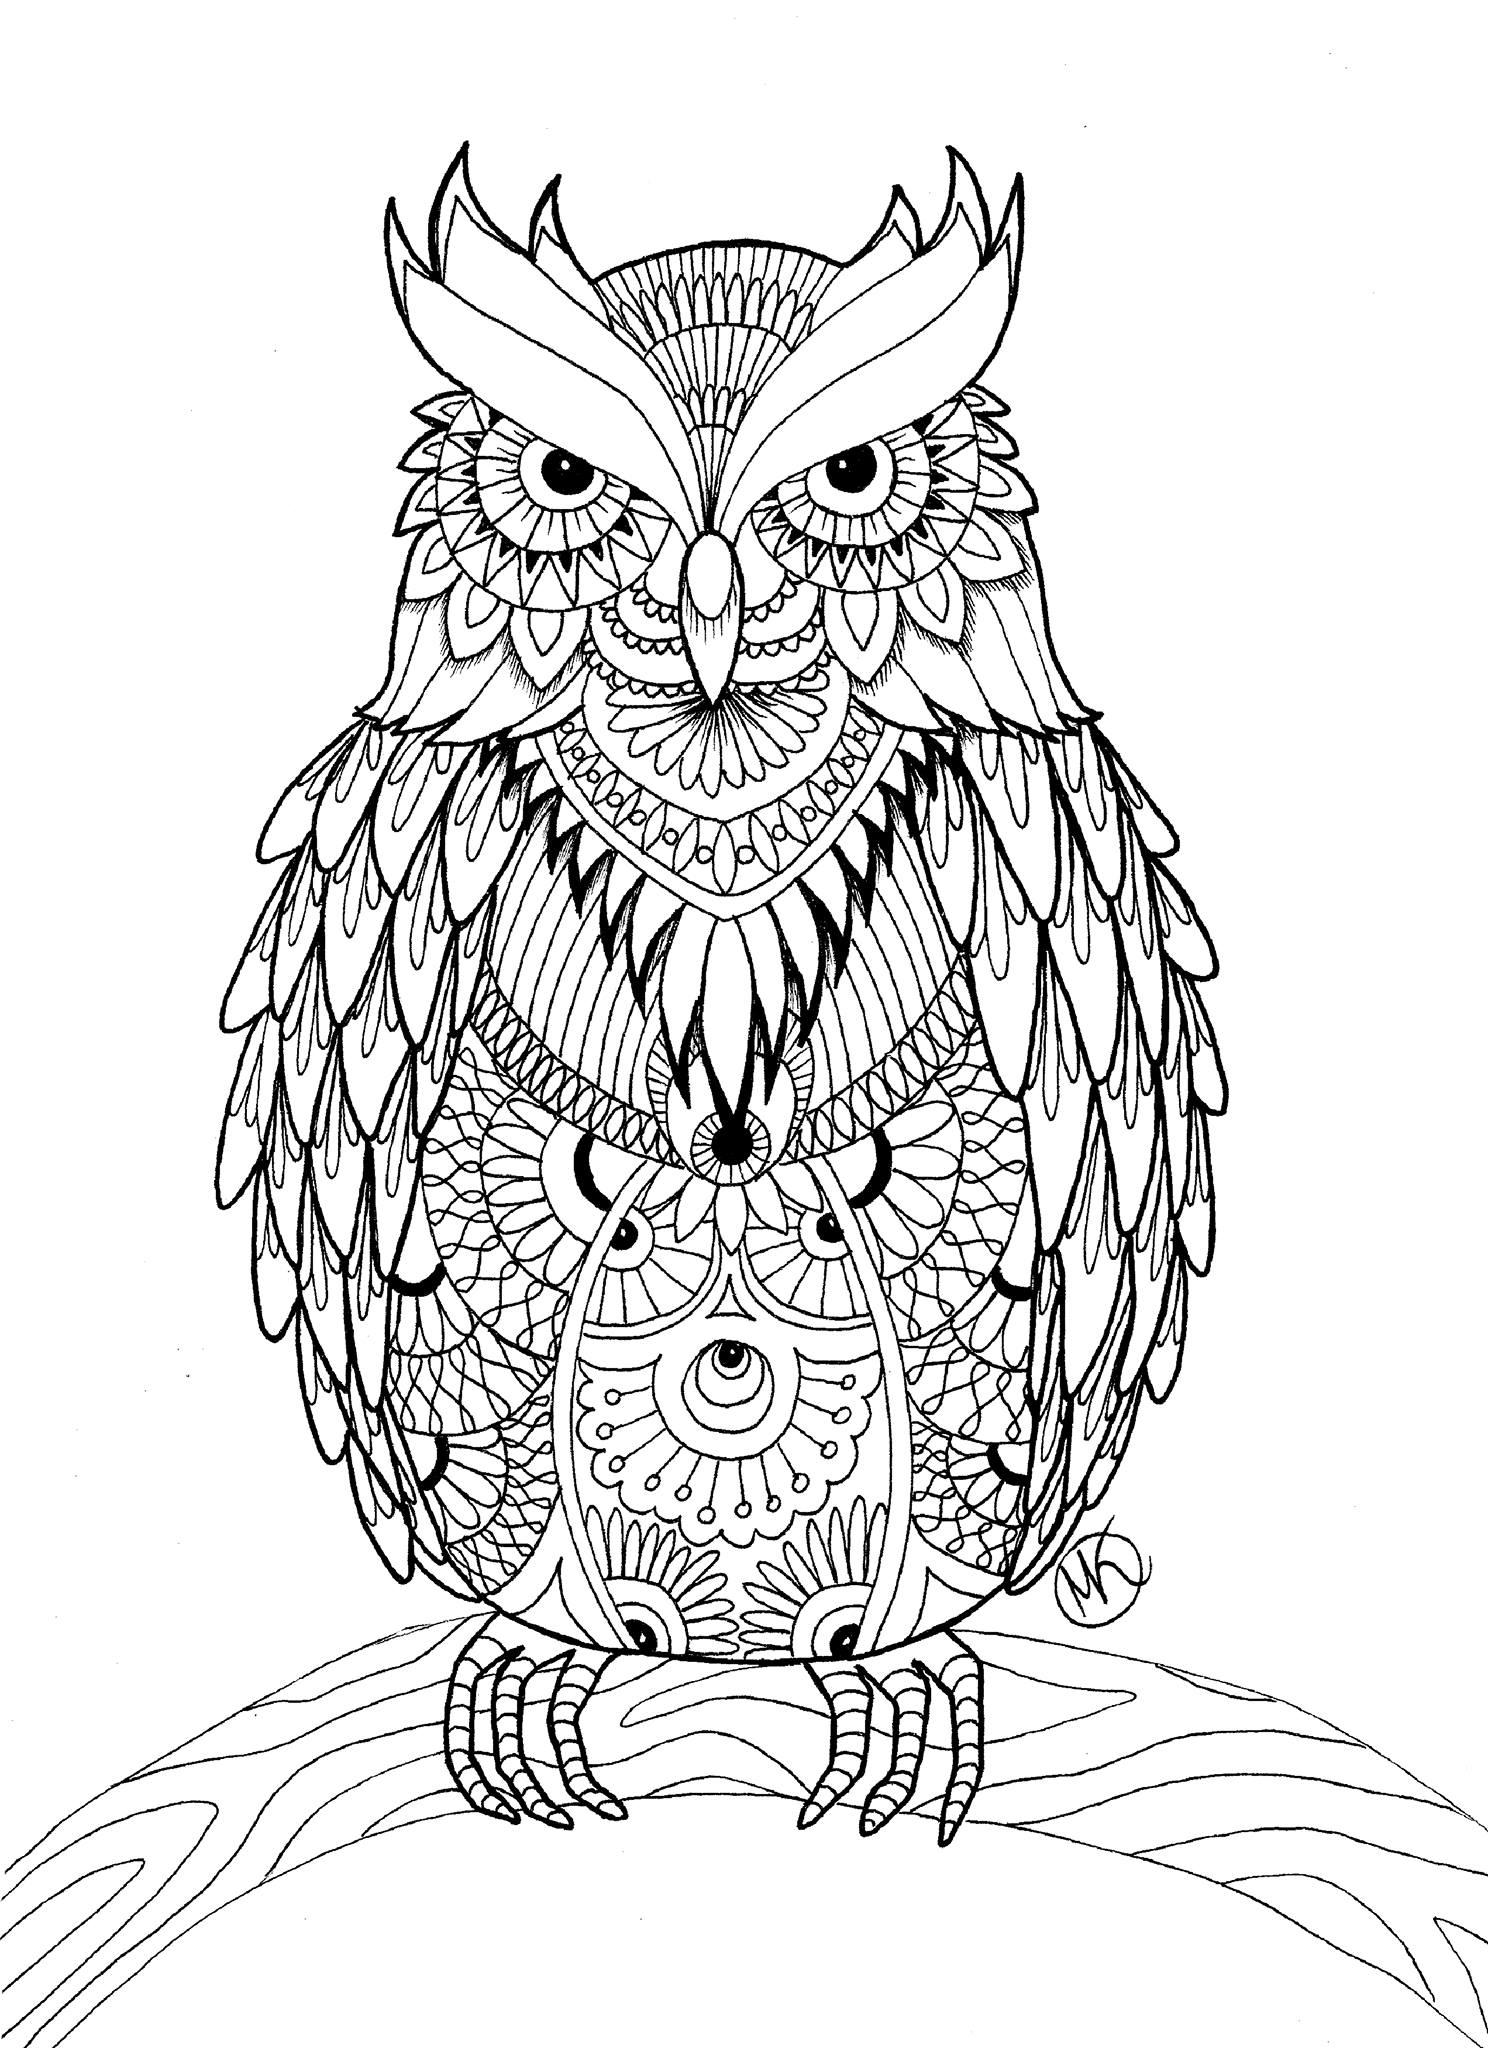 color pages online make any picture a coloring page with ipiccy ipiccy pages color online